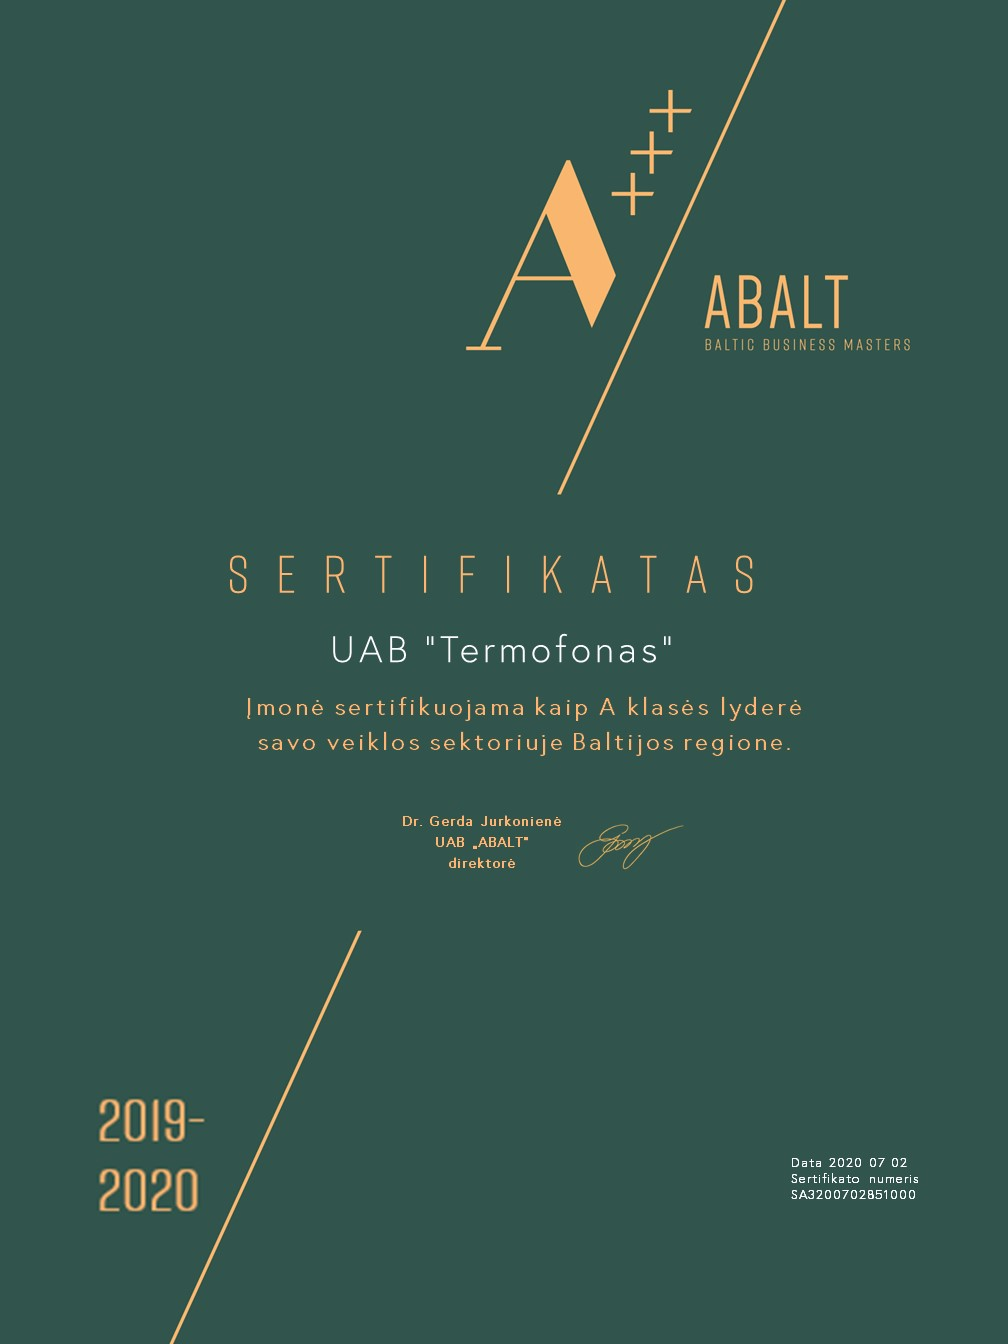 We received recognition as a leader in Class A in the Baltic countries